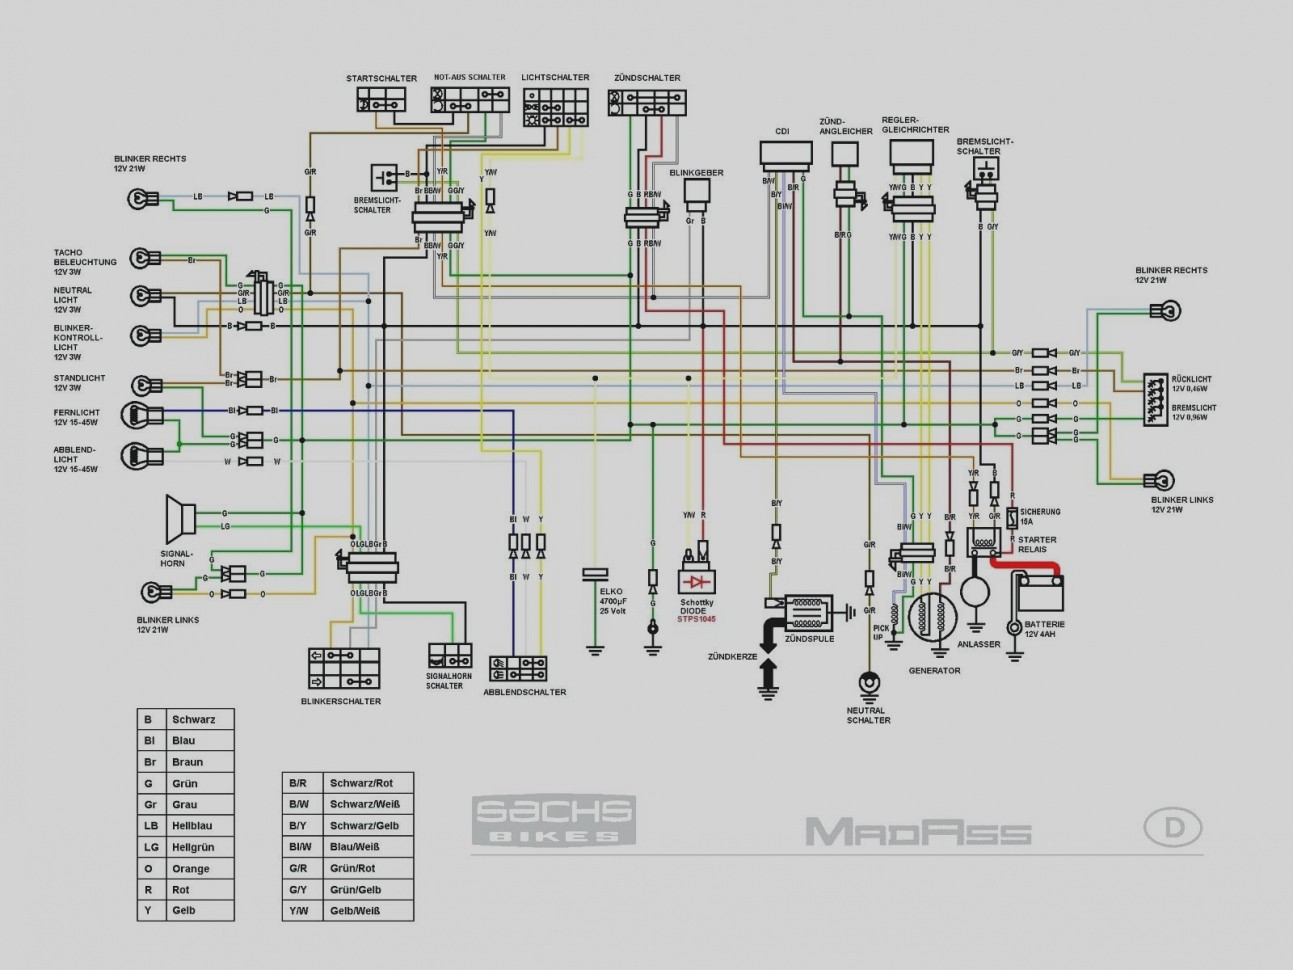 taotao 49cc scooter wiring diagram 2001 nissan frontier for jonway gy6 50cc